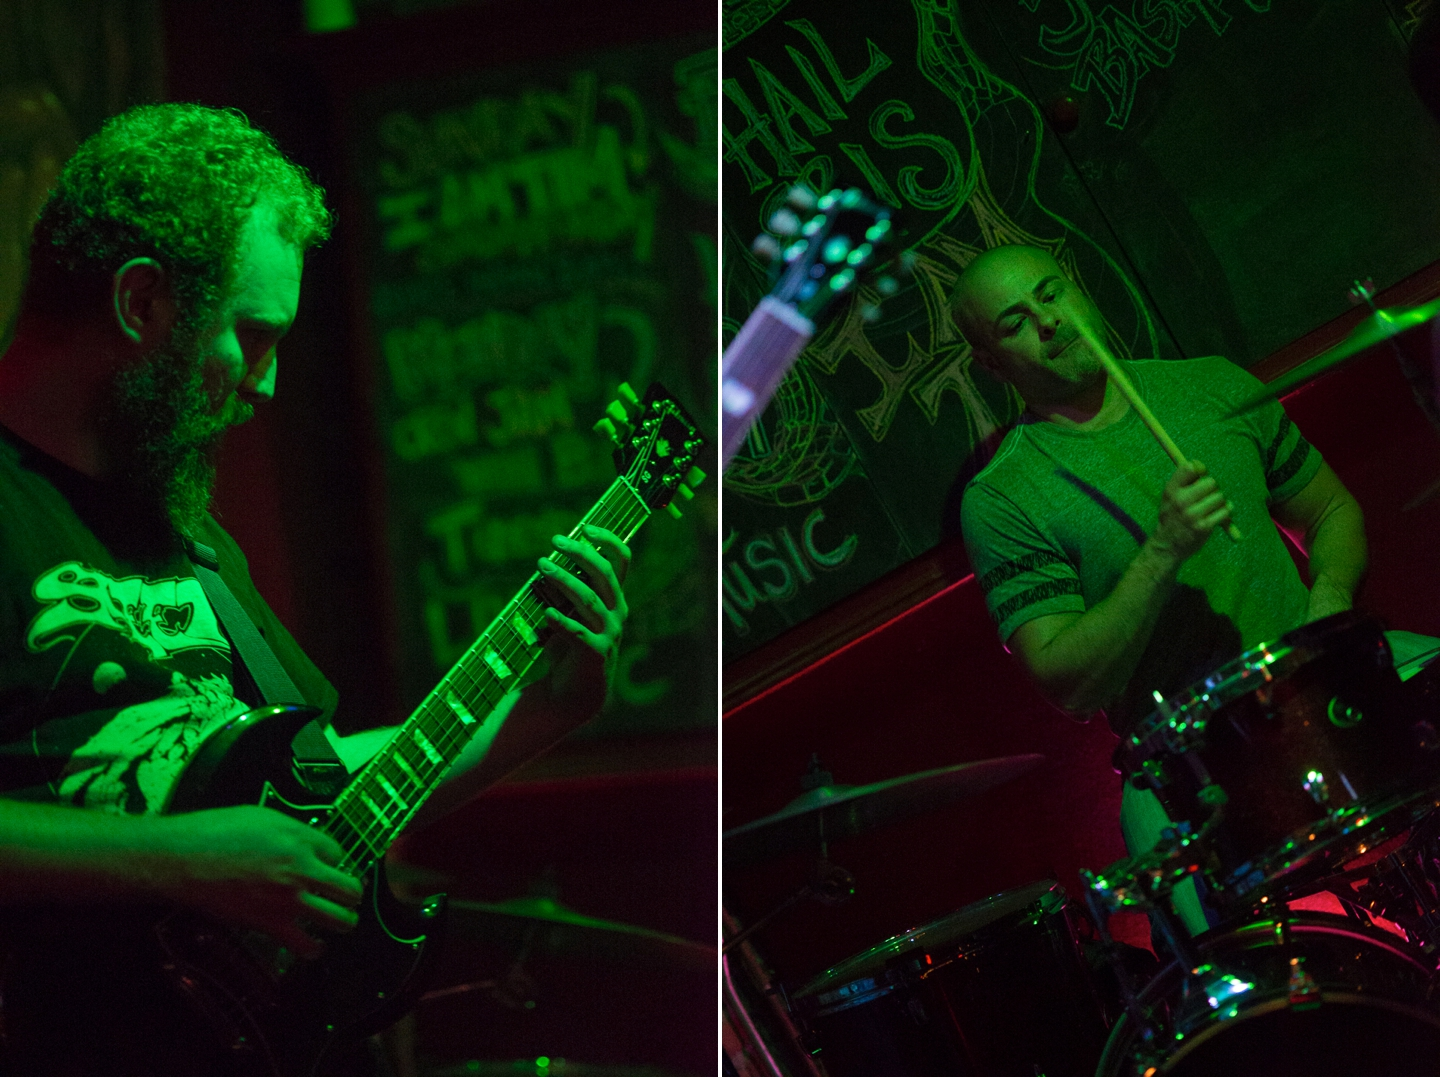 hail-eris-velvet-lounge-setauket-long-island-band-photography-collahe-1